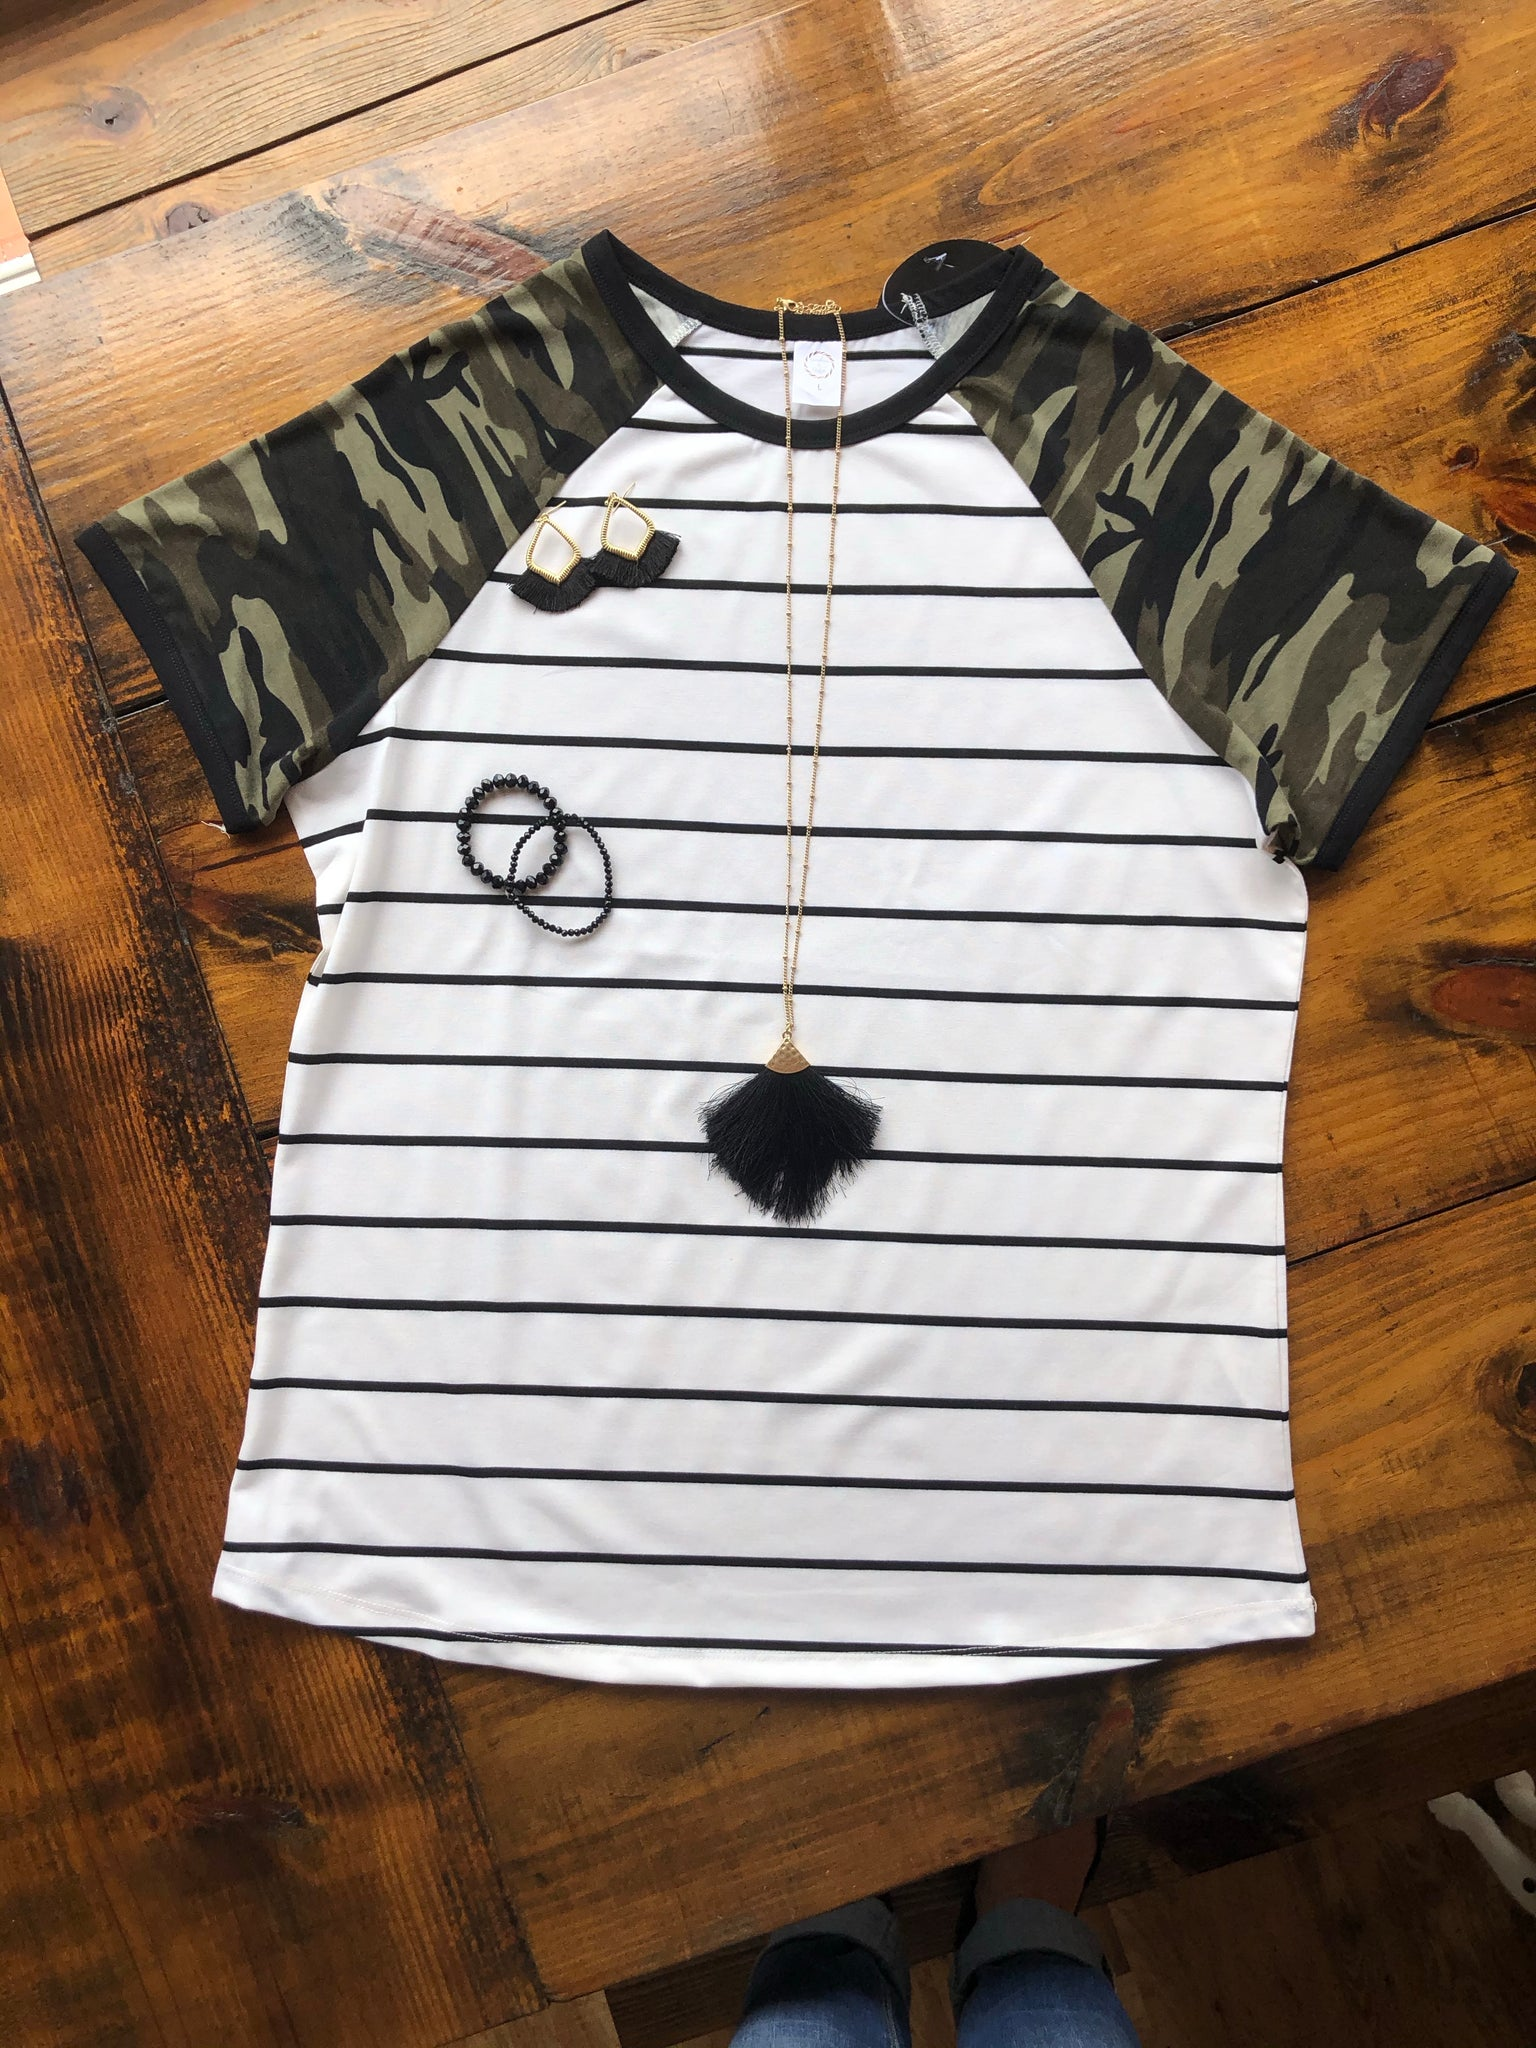 Stripes and Camouflage Short Sleeve Ringer Tee